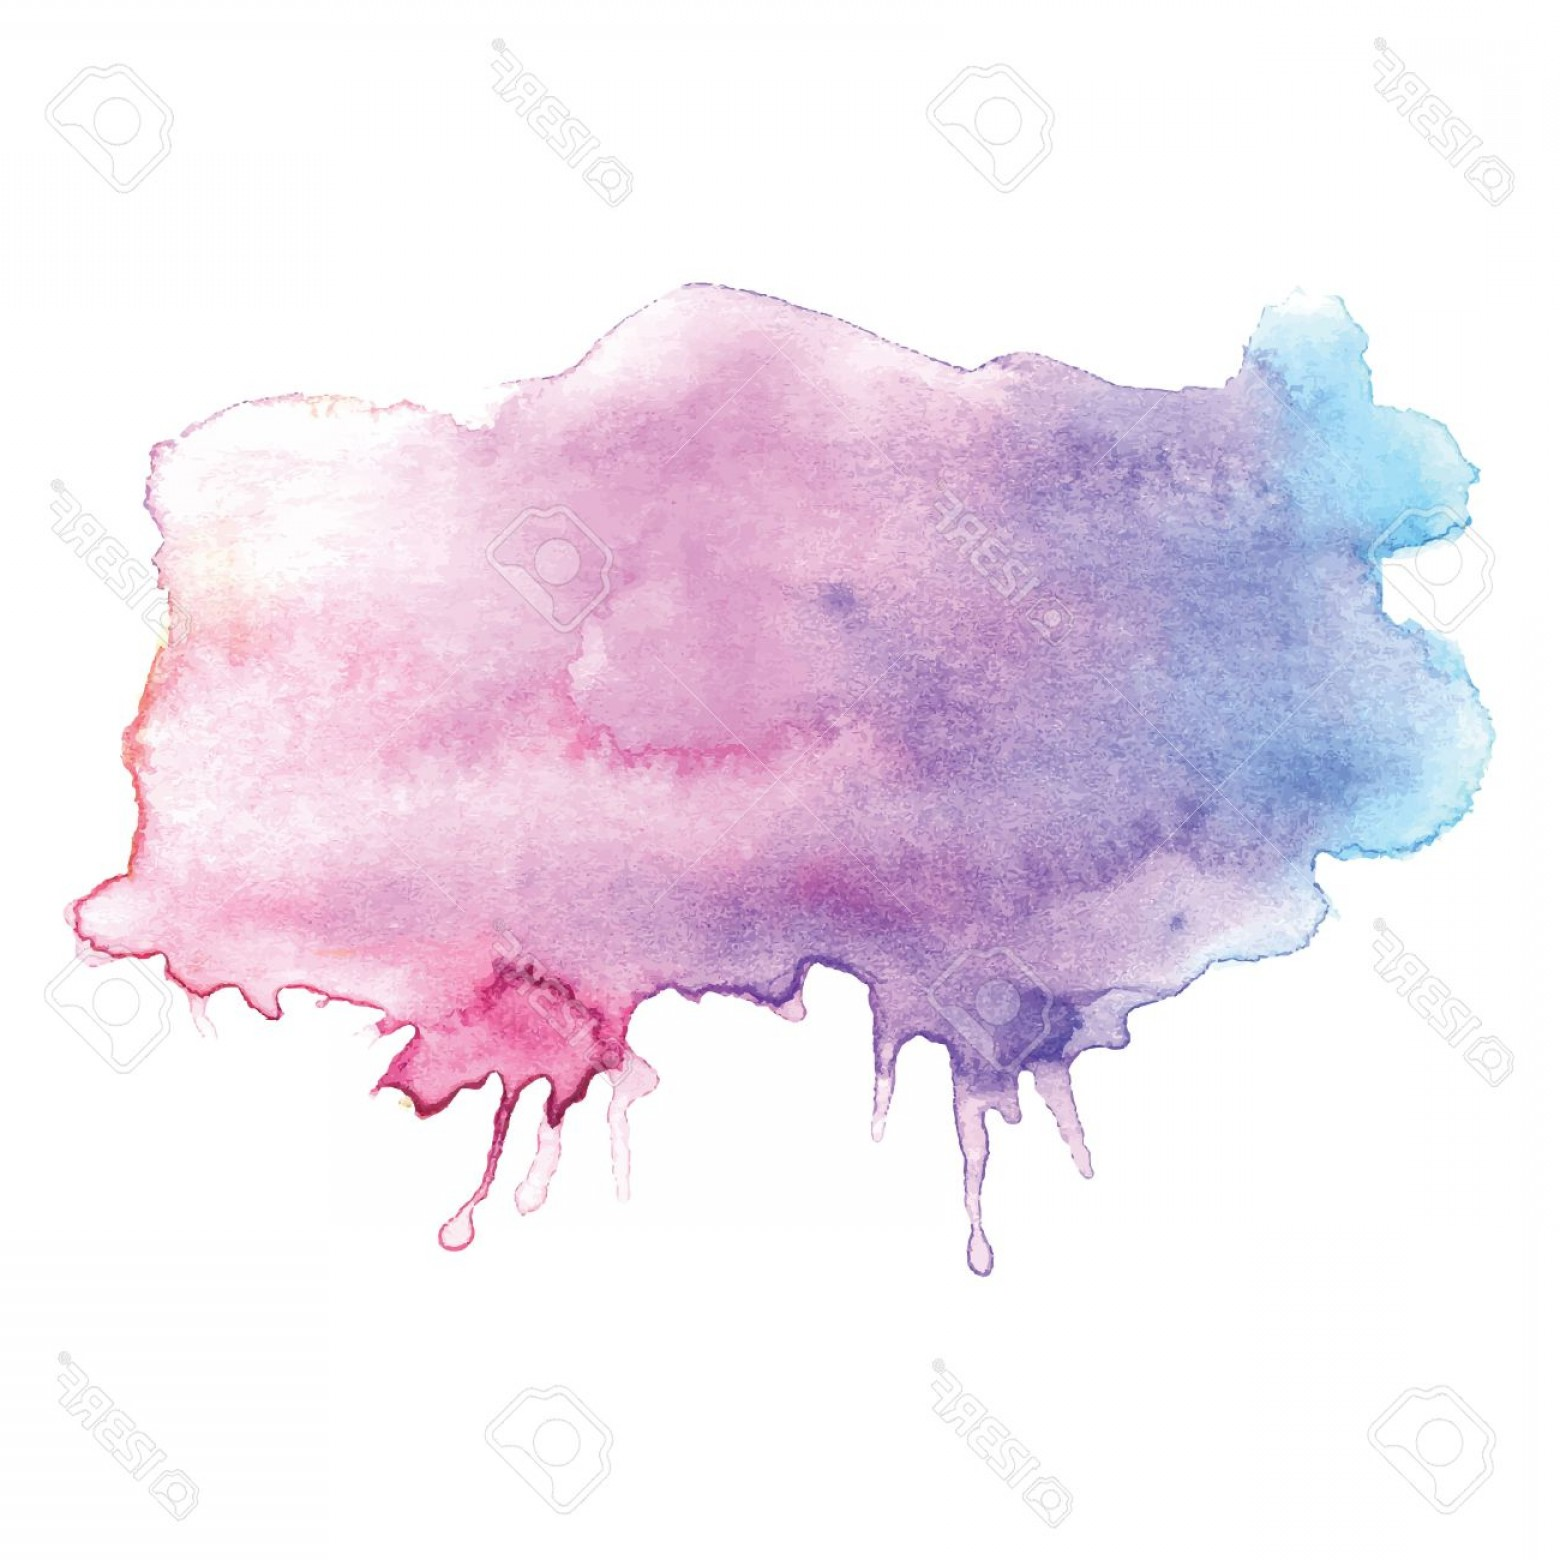 Watercolor Vector Background Free: Photostock Vector Watercolor Vector Design Element